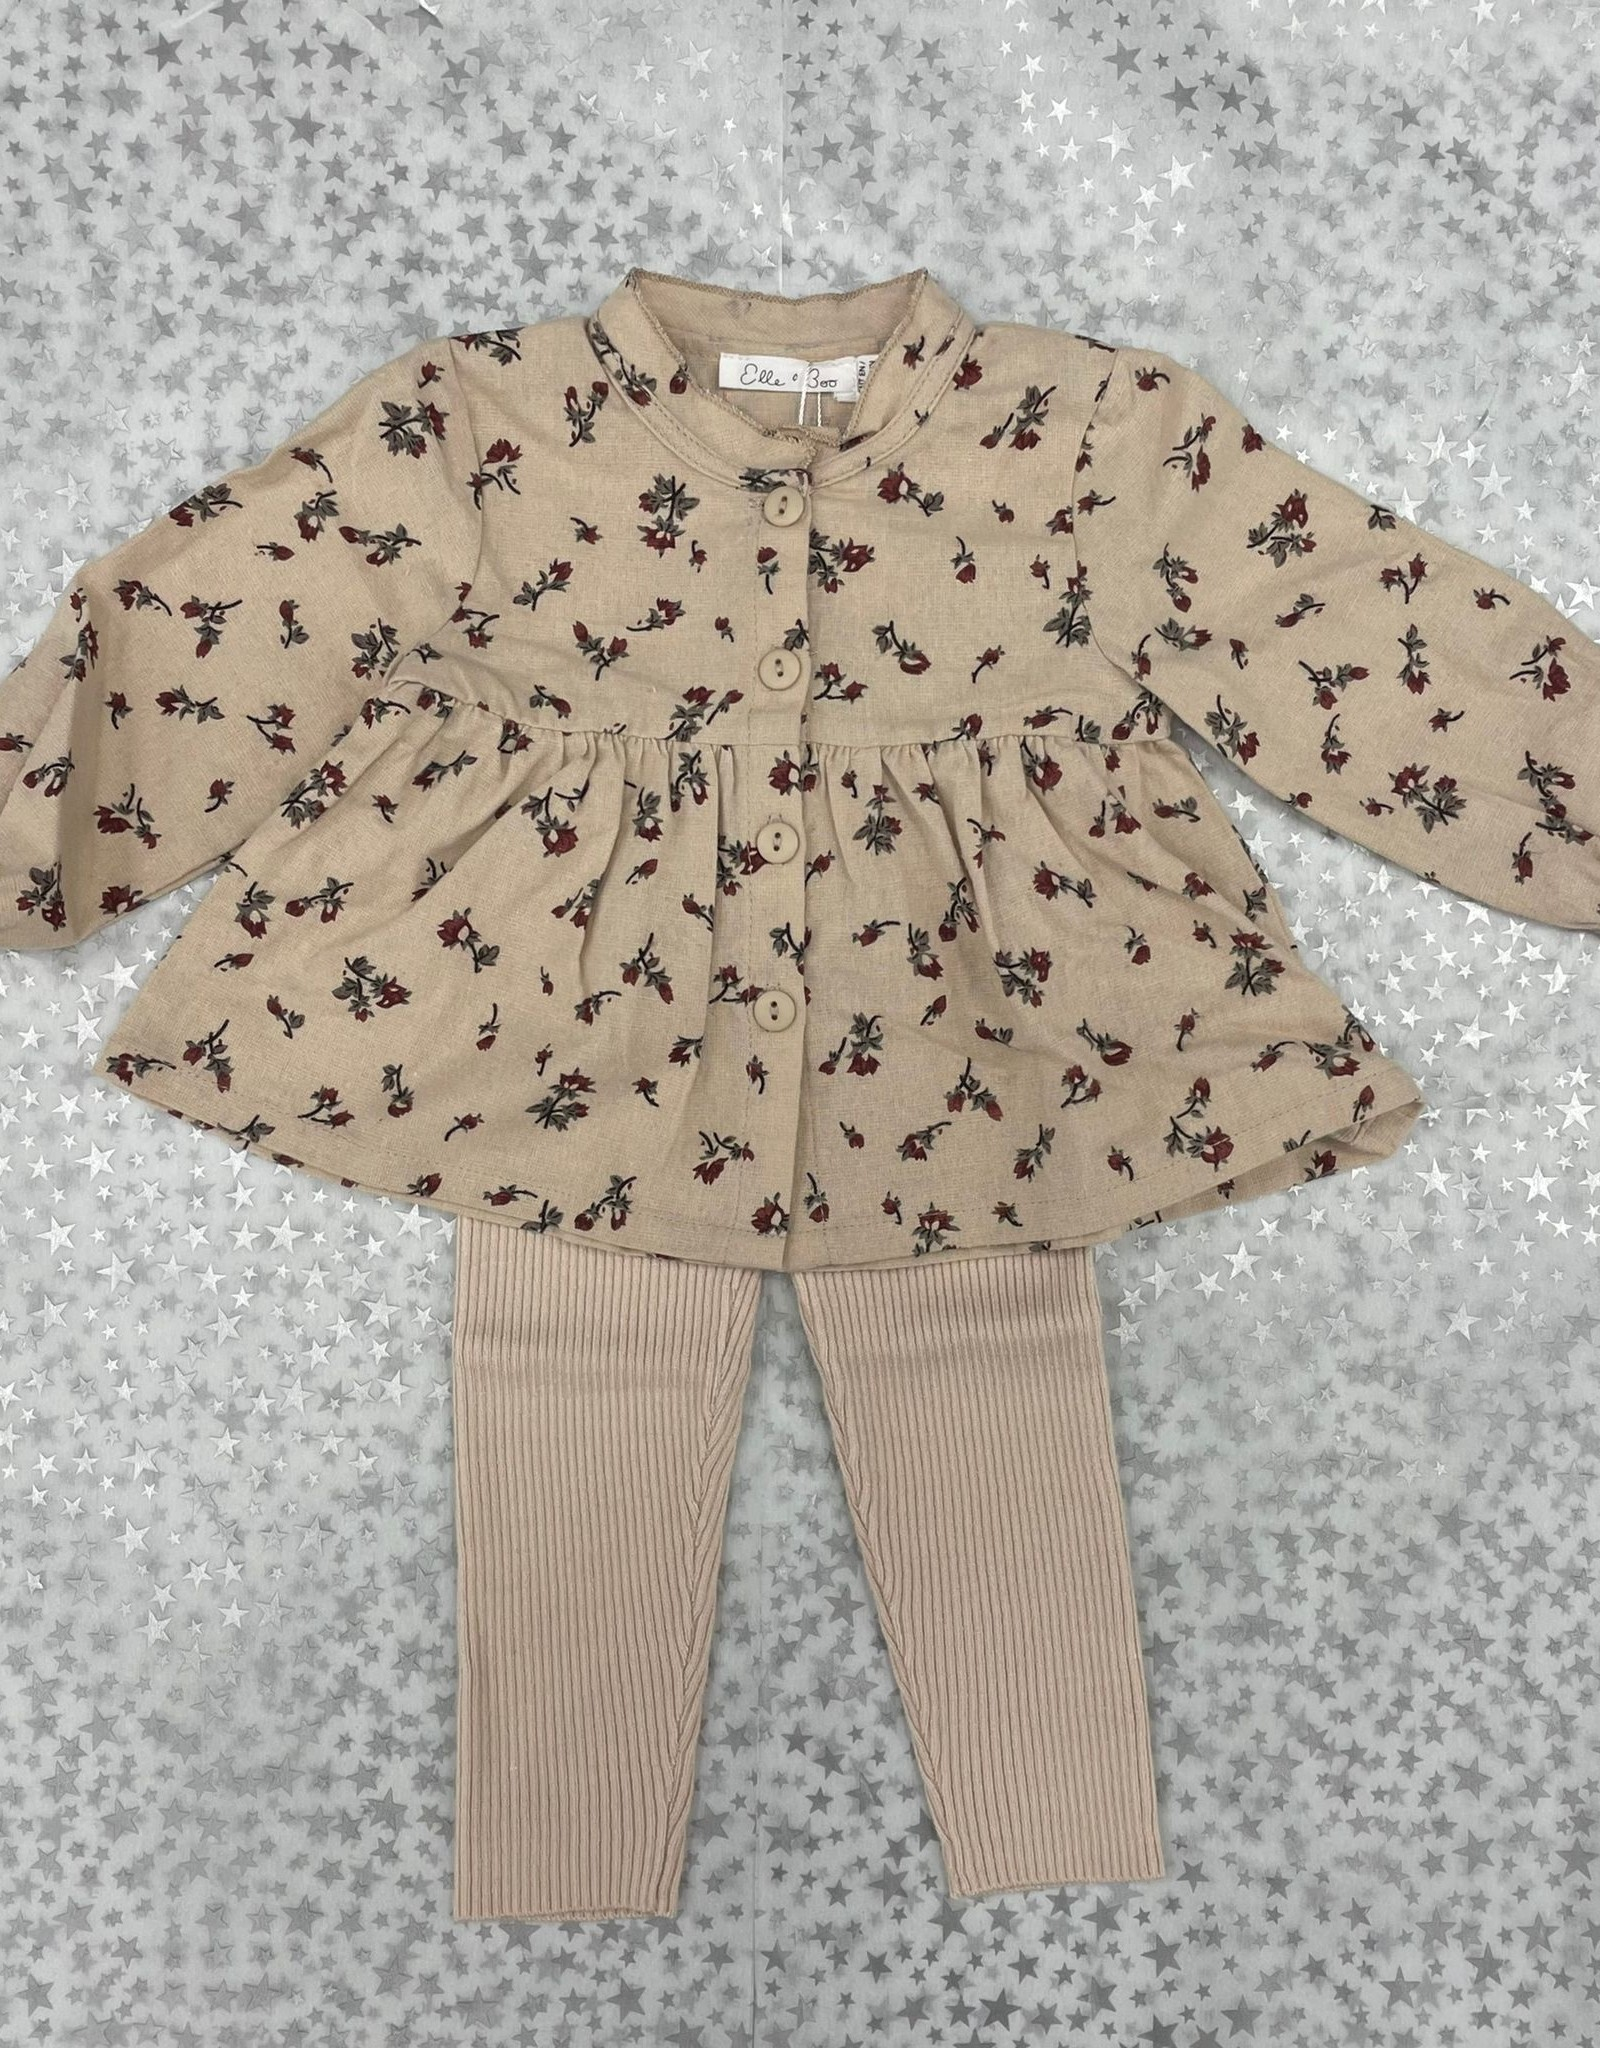 Elle & Boo Elle & Boo Floral Top with Knit Pants